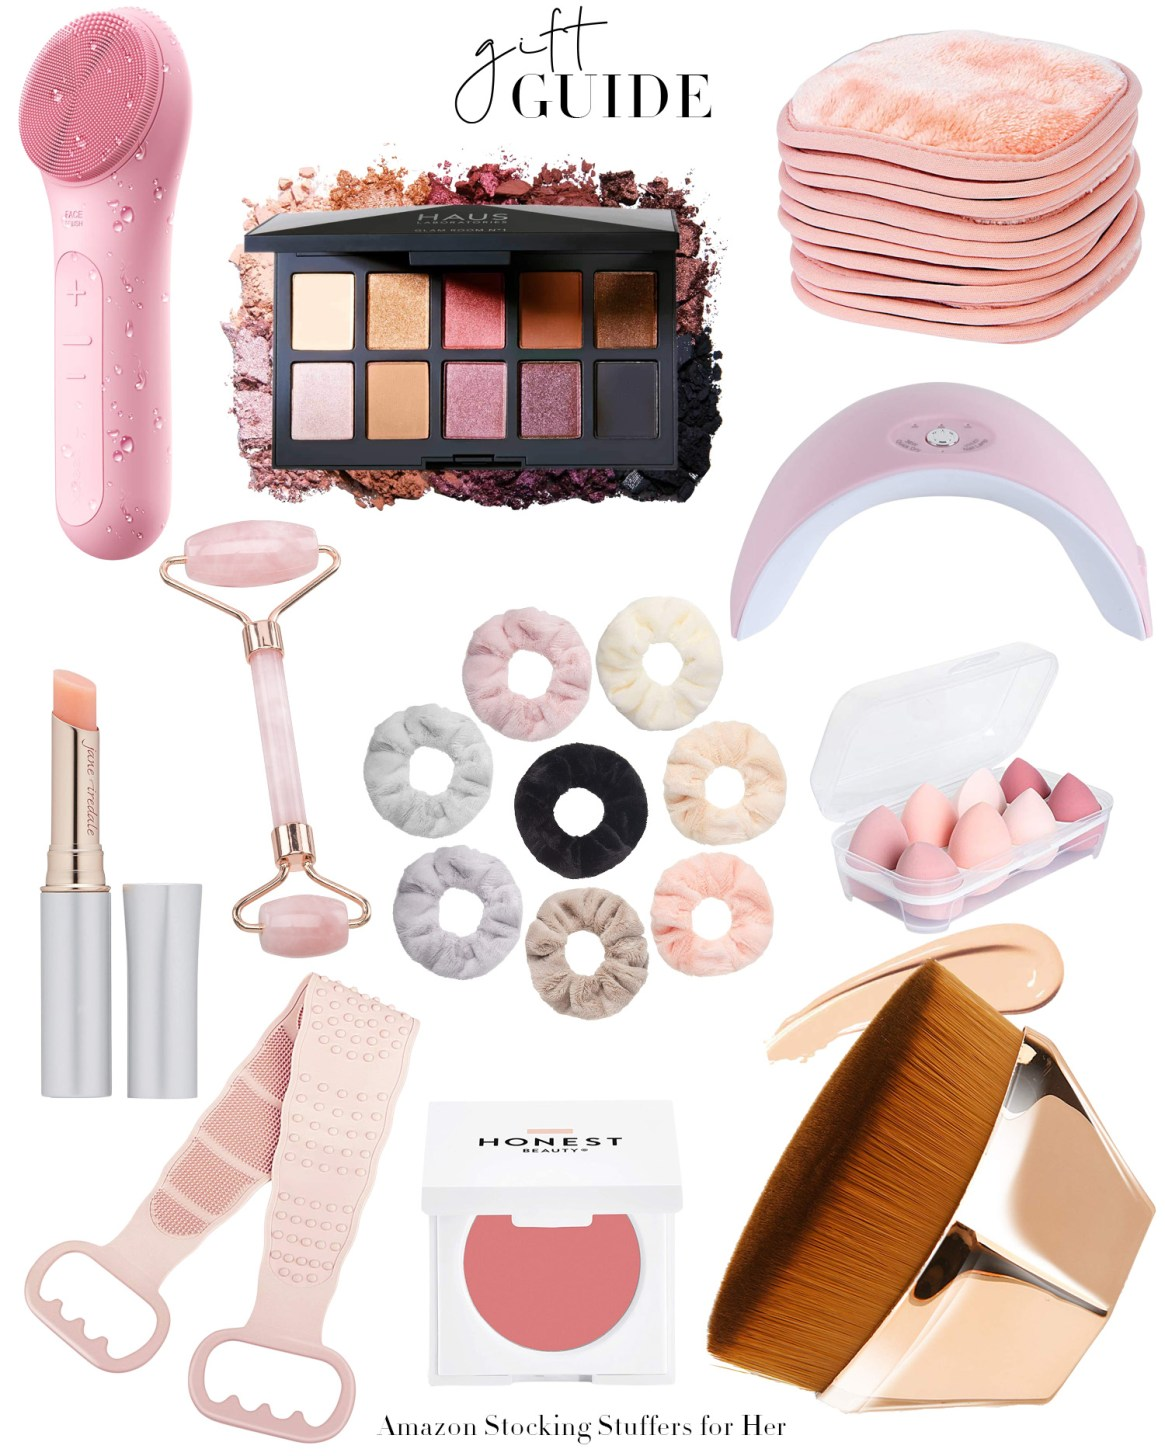 Holiday 2020 Gift Guide Stocking Stuffers for Her